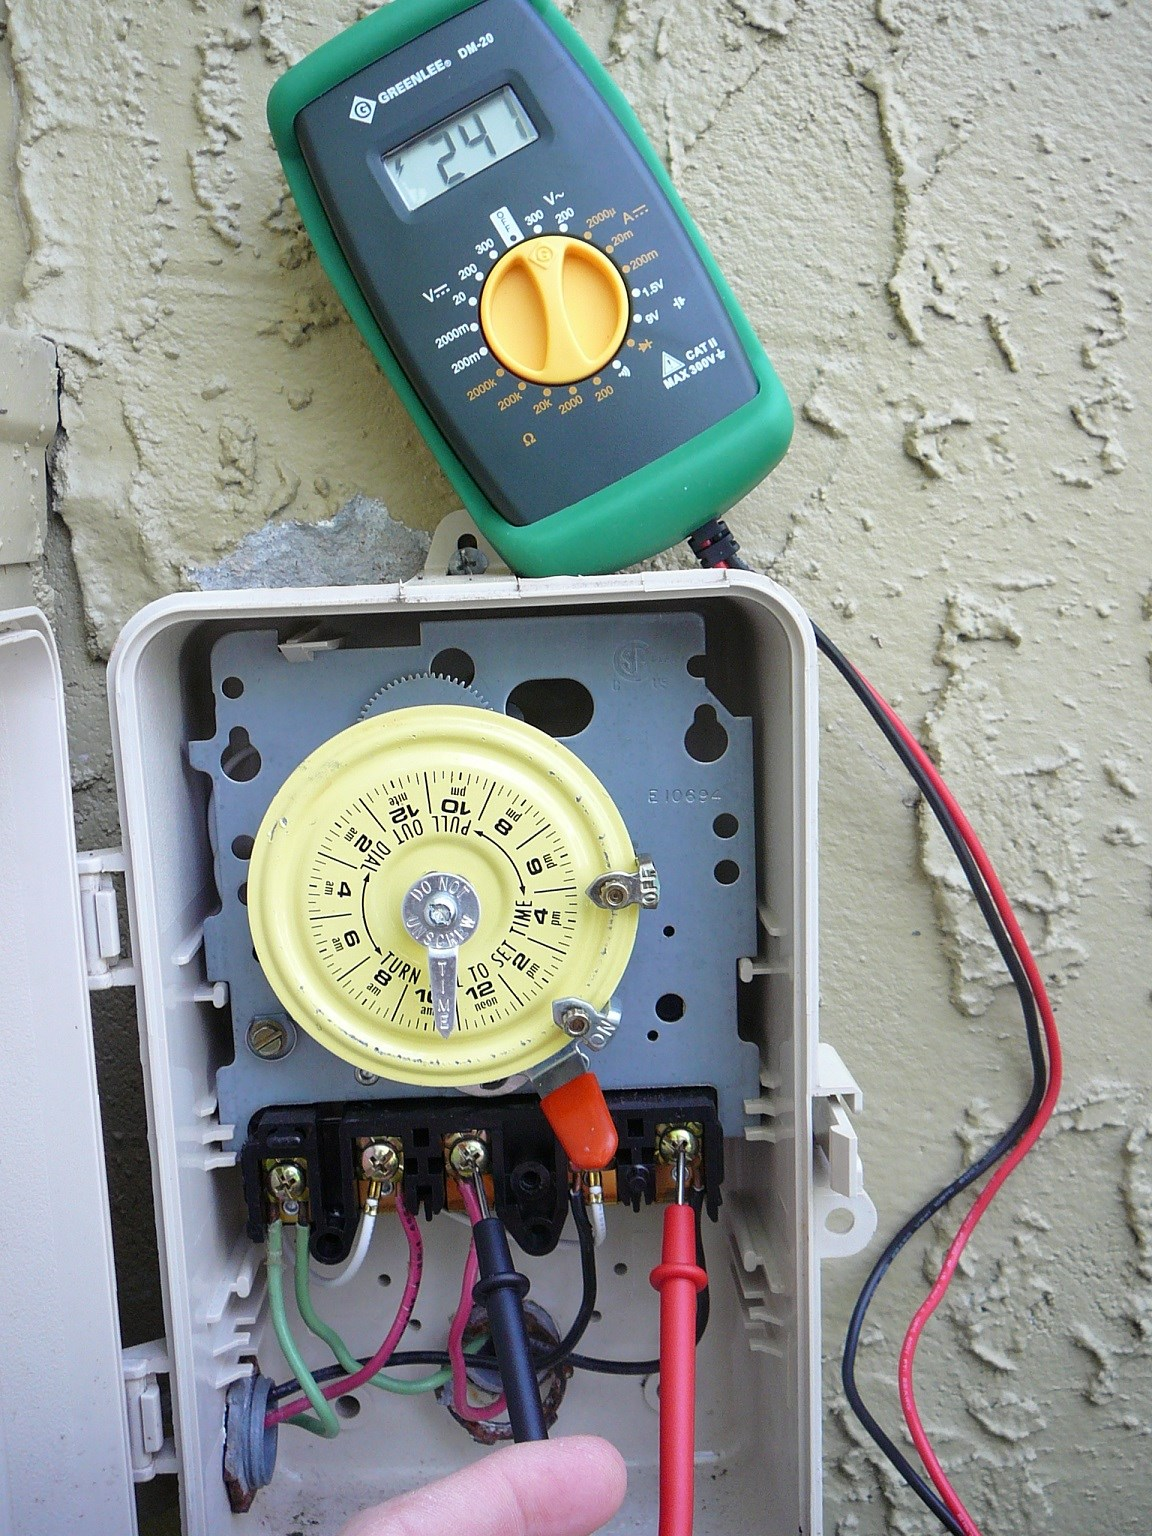 How To Use A Multimeter Test Pool Pump Motor Voltage Control Machine Wiring If You Are Installing New Or Have Troubleshoot Failing Will Generally Want Measure The Motors Supply